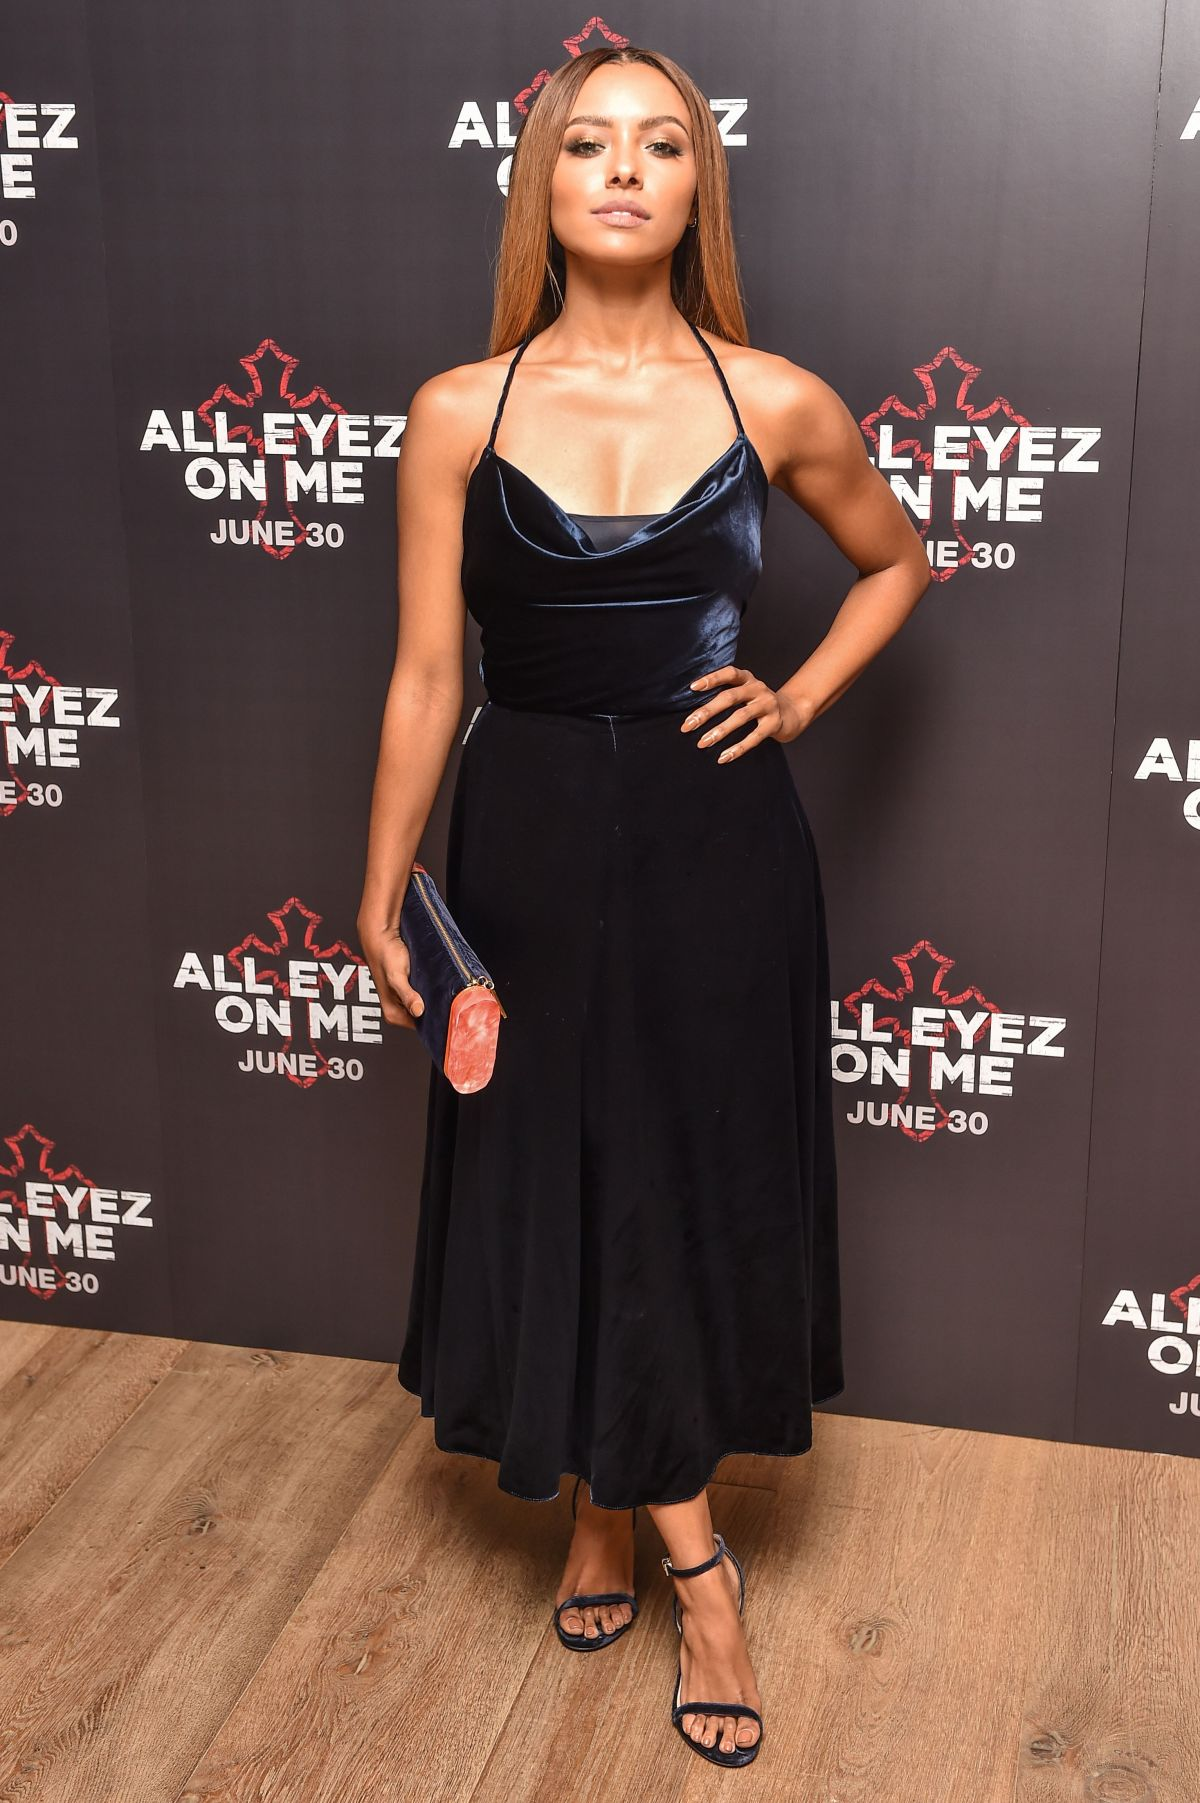 KAT GRAHAM at All Eyez On Me Premiere in London 06/27/2017 ...